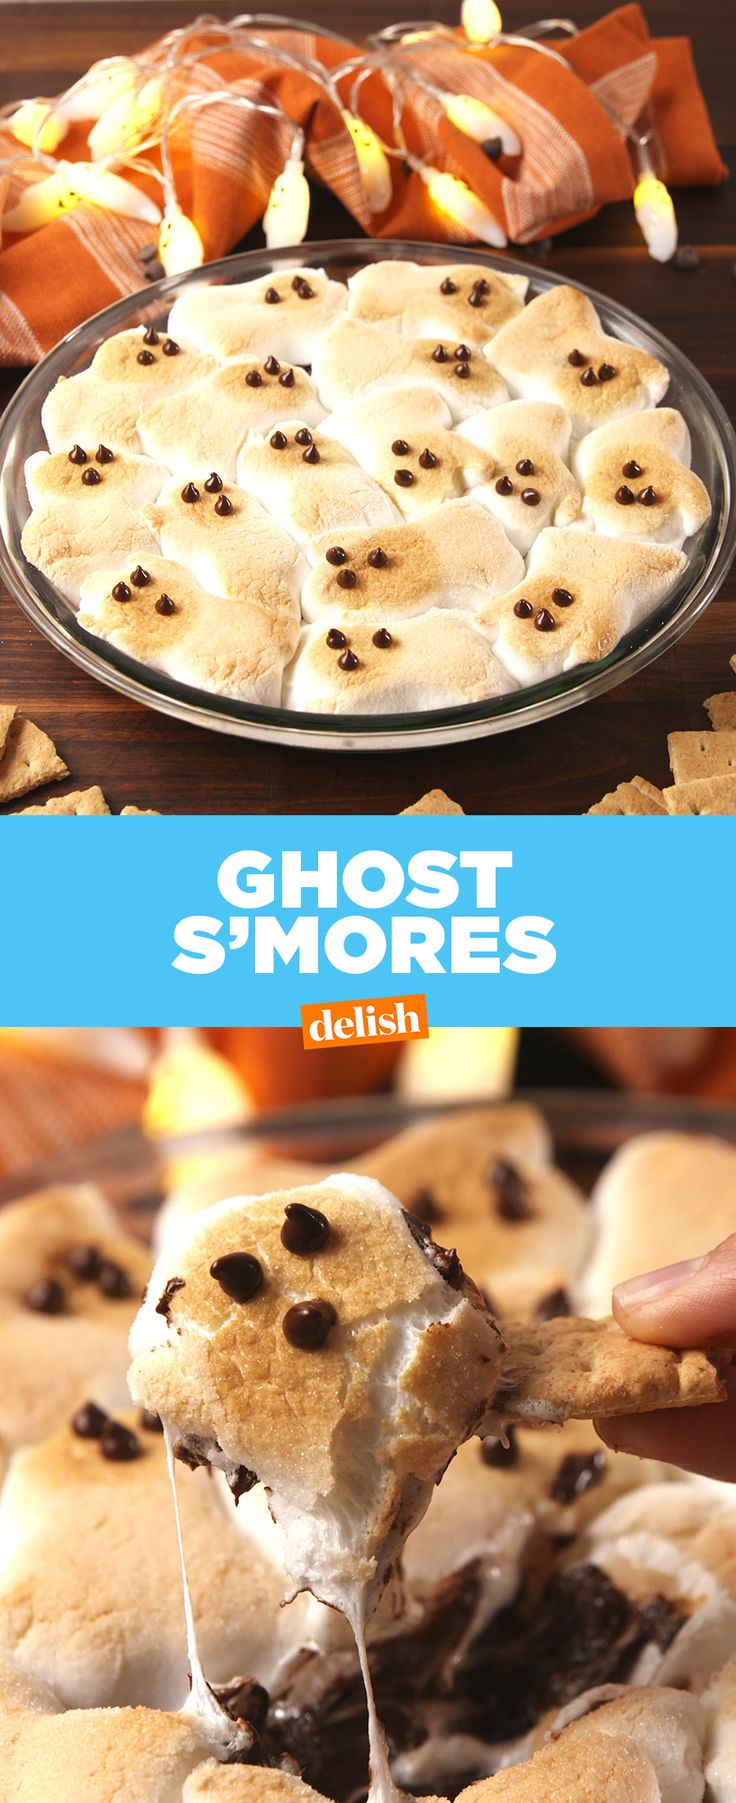 You can't celebrate Halloween without Ghost S'mores. Get the recipe from Delish.com.